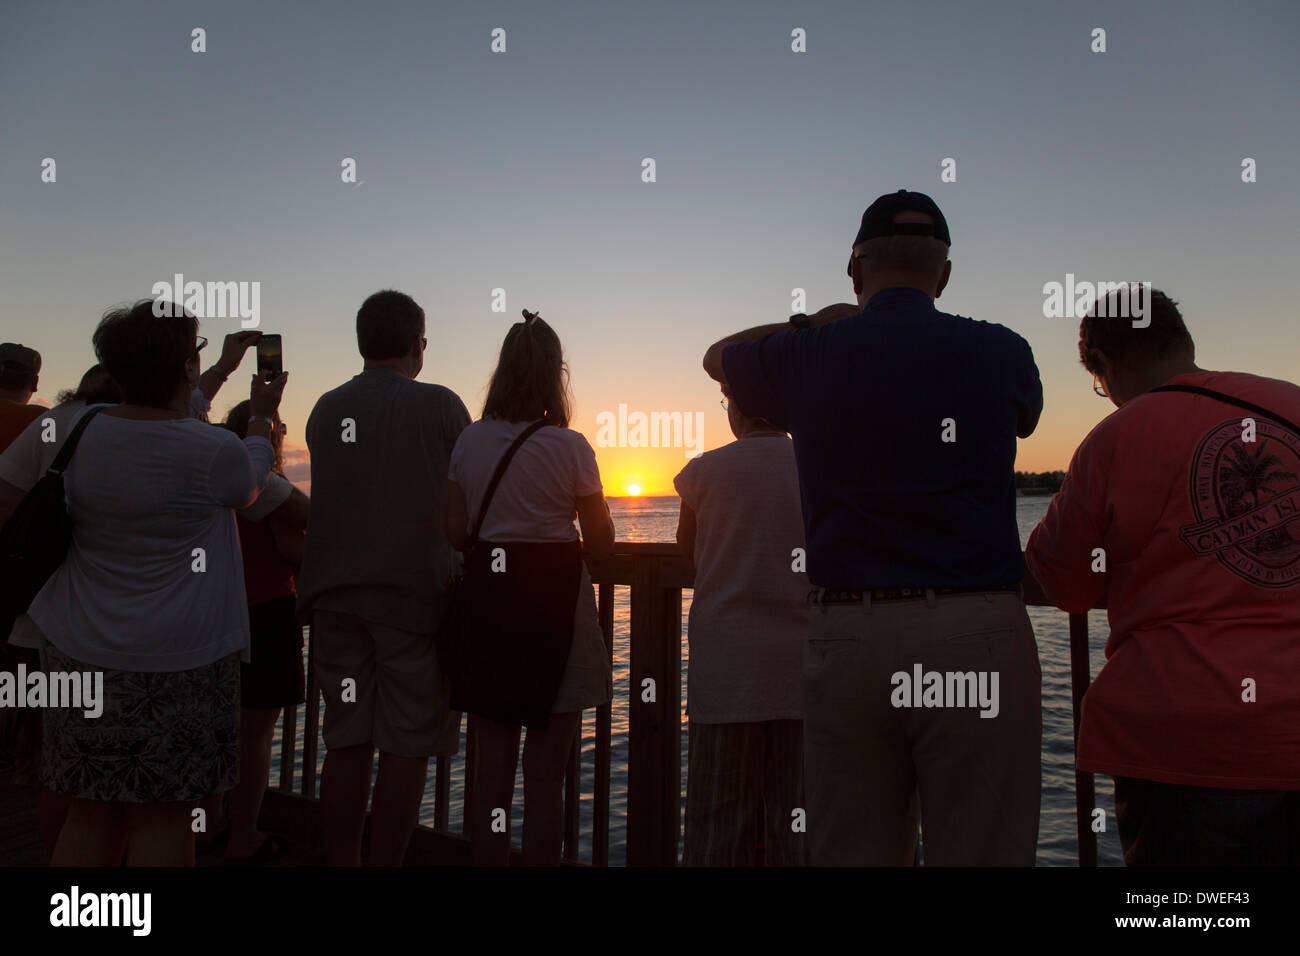 Key West, Florida - Tourists gather in Mallory Square to watch the sunset. - Stock Image